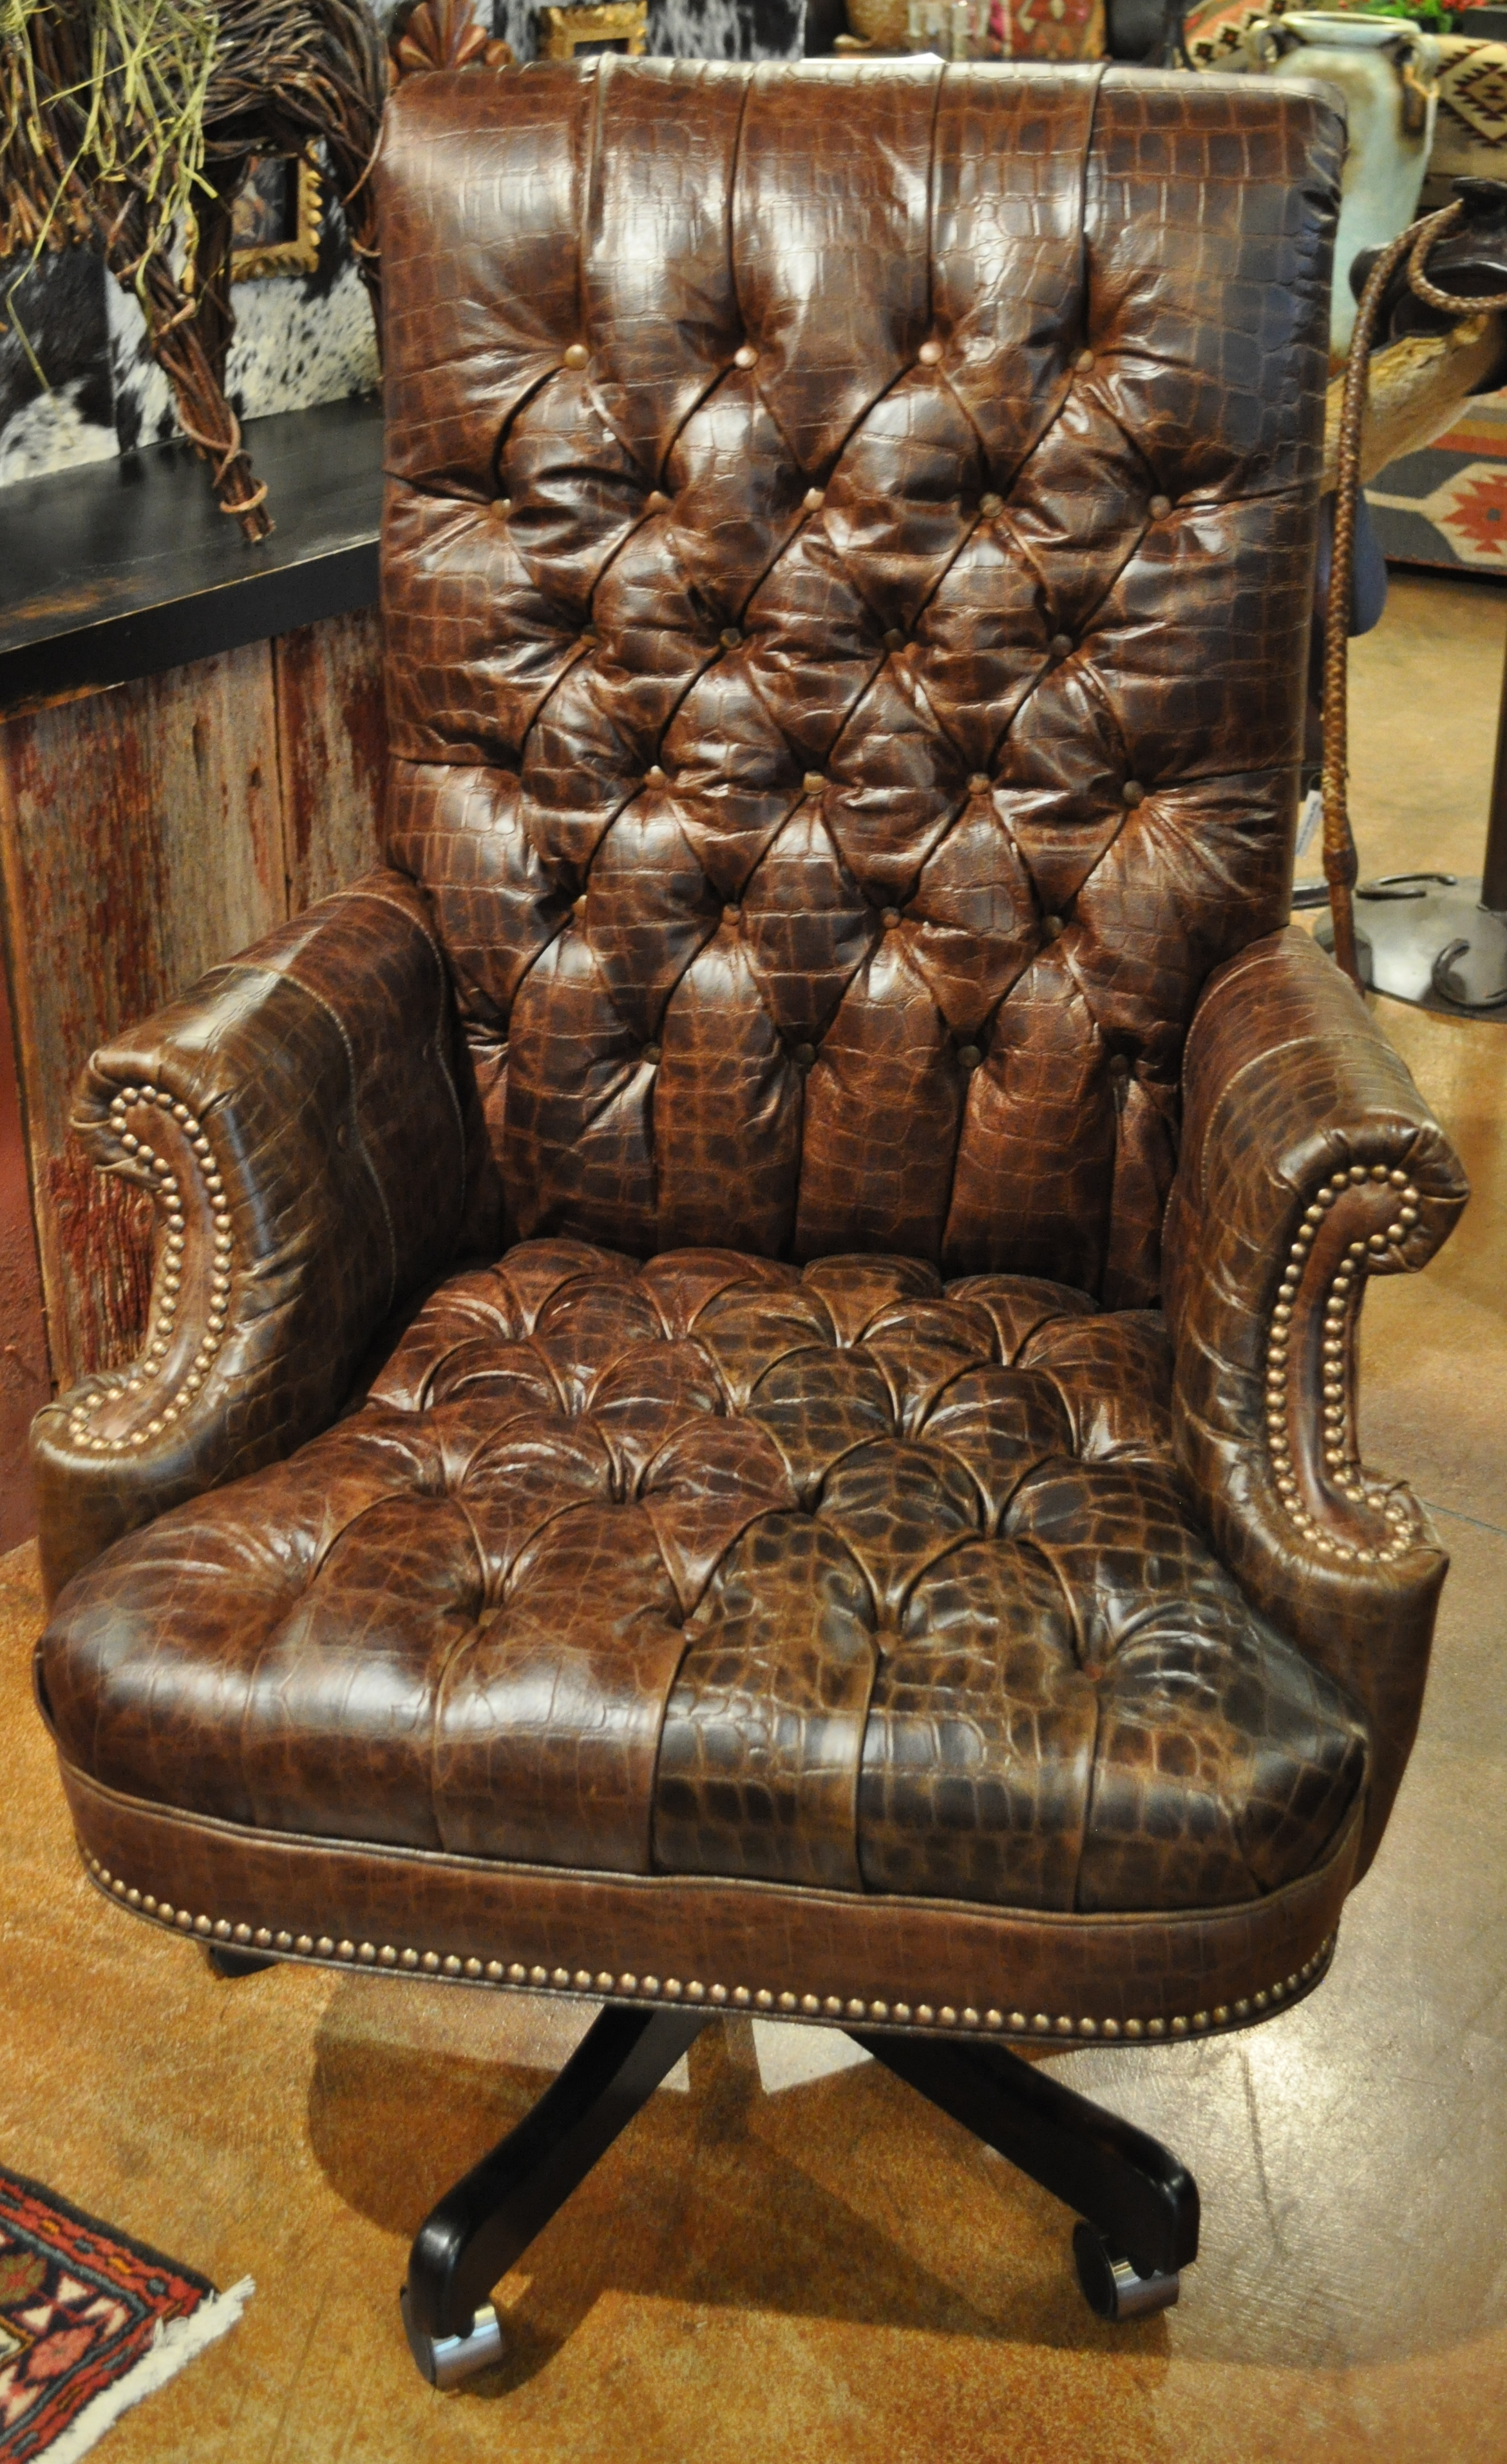 Hon Executive Office Chairs Inside Newest Leather Office Chair In Brown Tufted Embossed Croc (View 14 of 20)